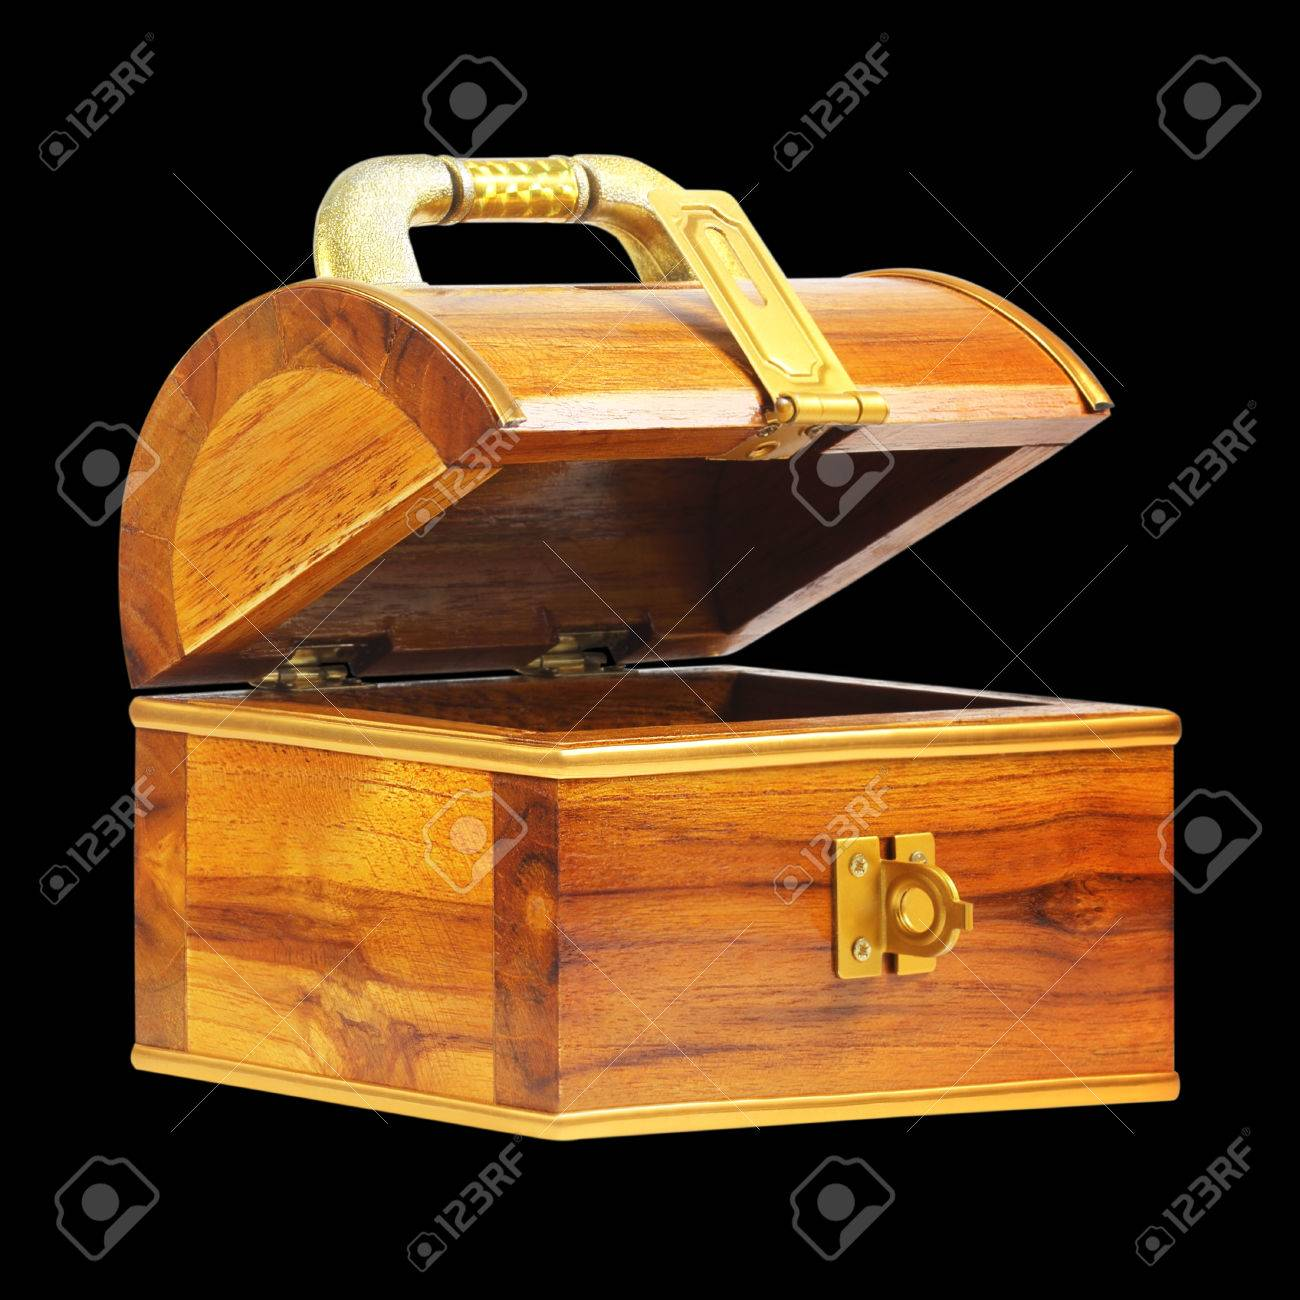 treasure chest money box with a coin slot isolated on white background Stock Photo - 55953581 & Treasure Chest Money Box With A Coin Slot Isolated On White ... Aboutintivar.Com